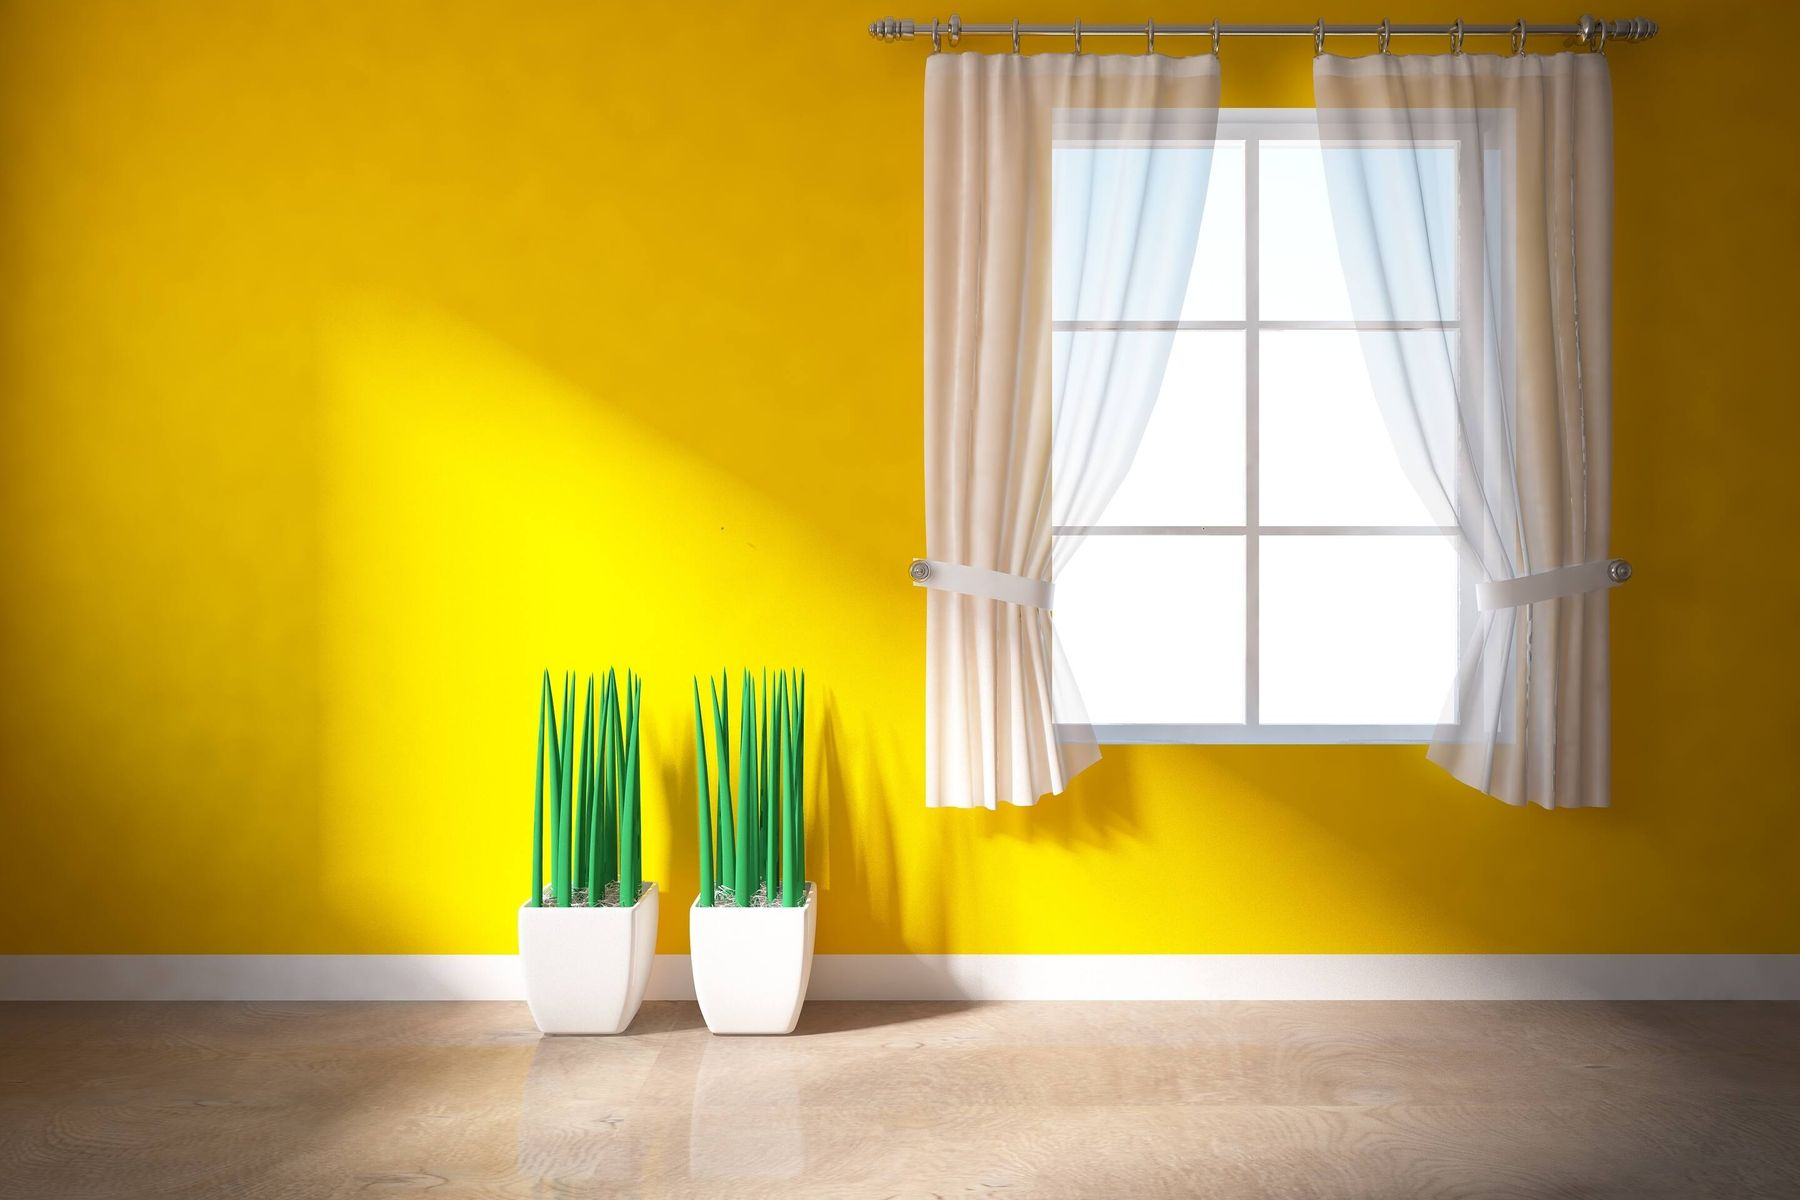 a window with white curtains in a yellow wall